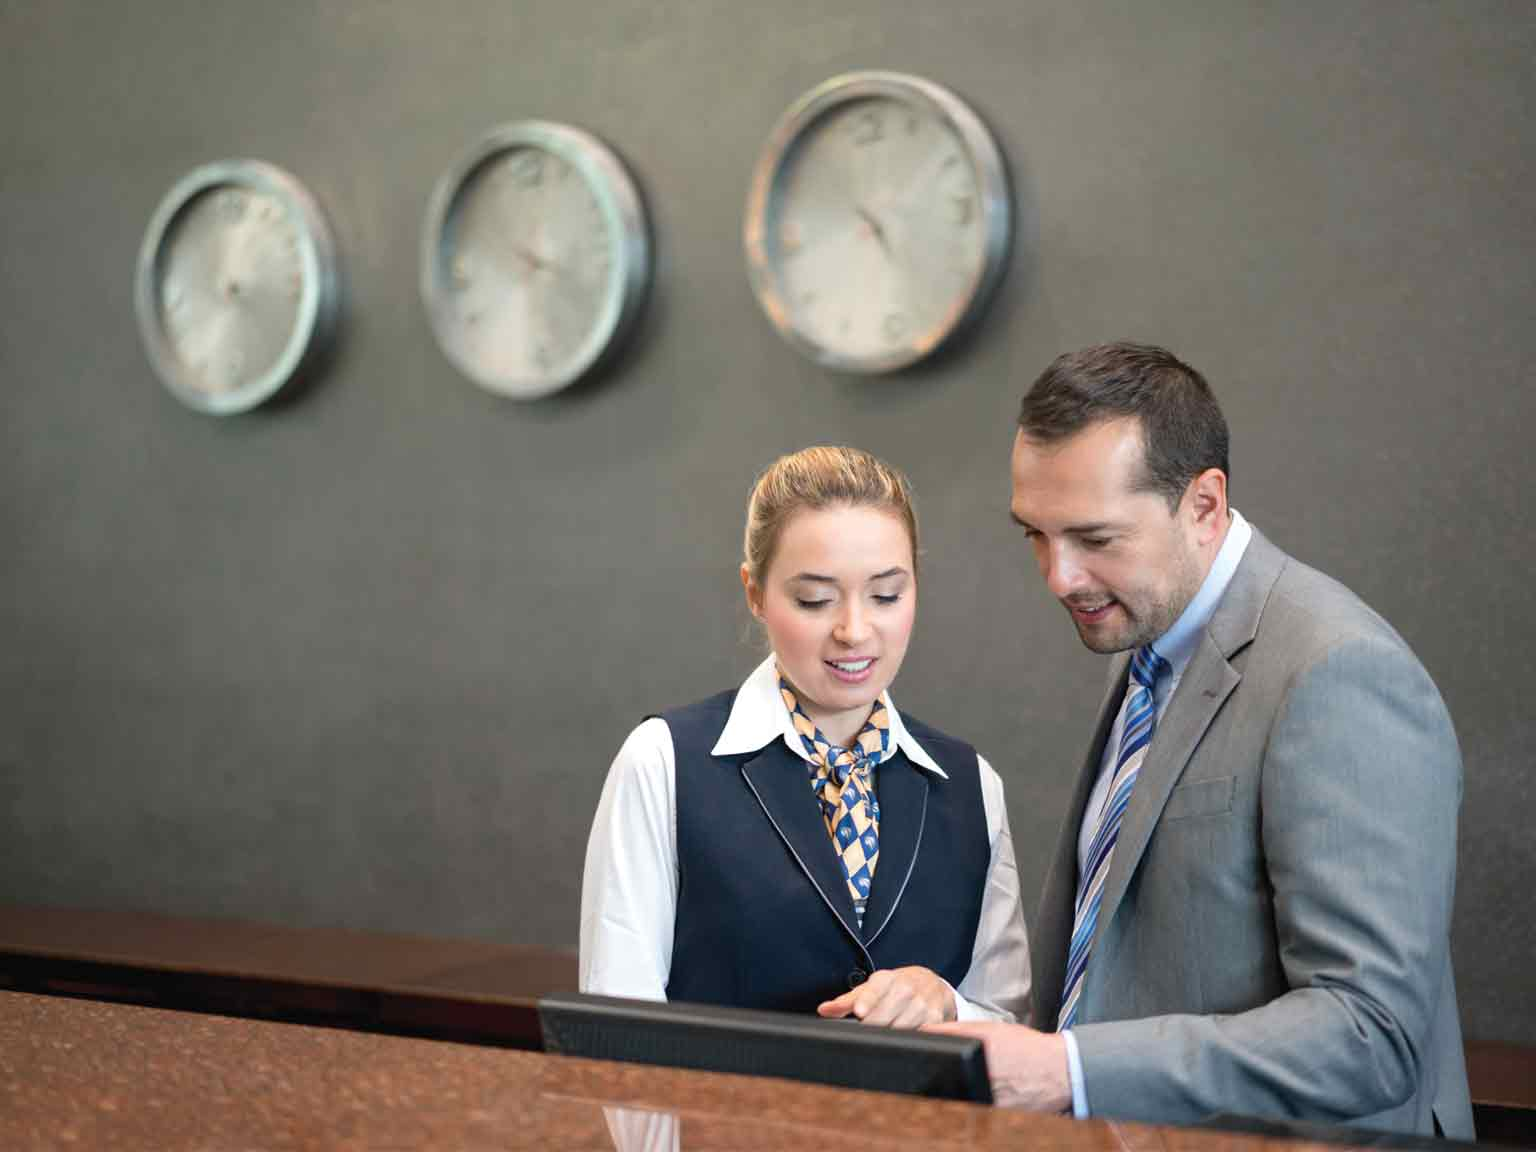 Two hotel receptionists looking at a computer screen